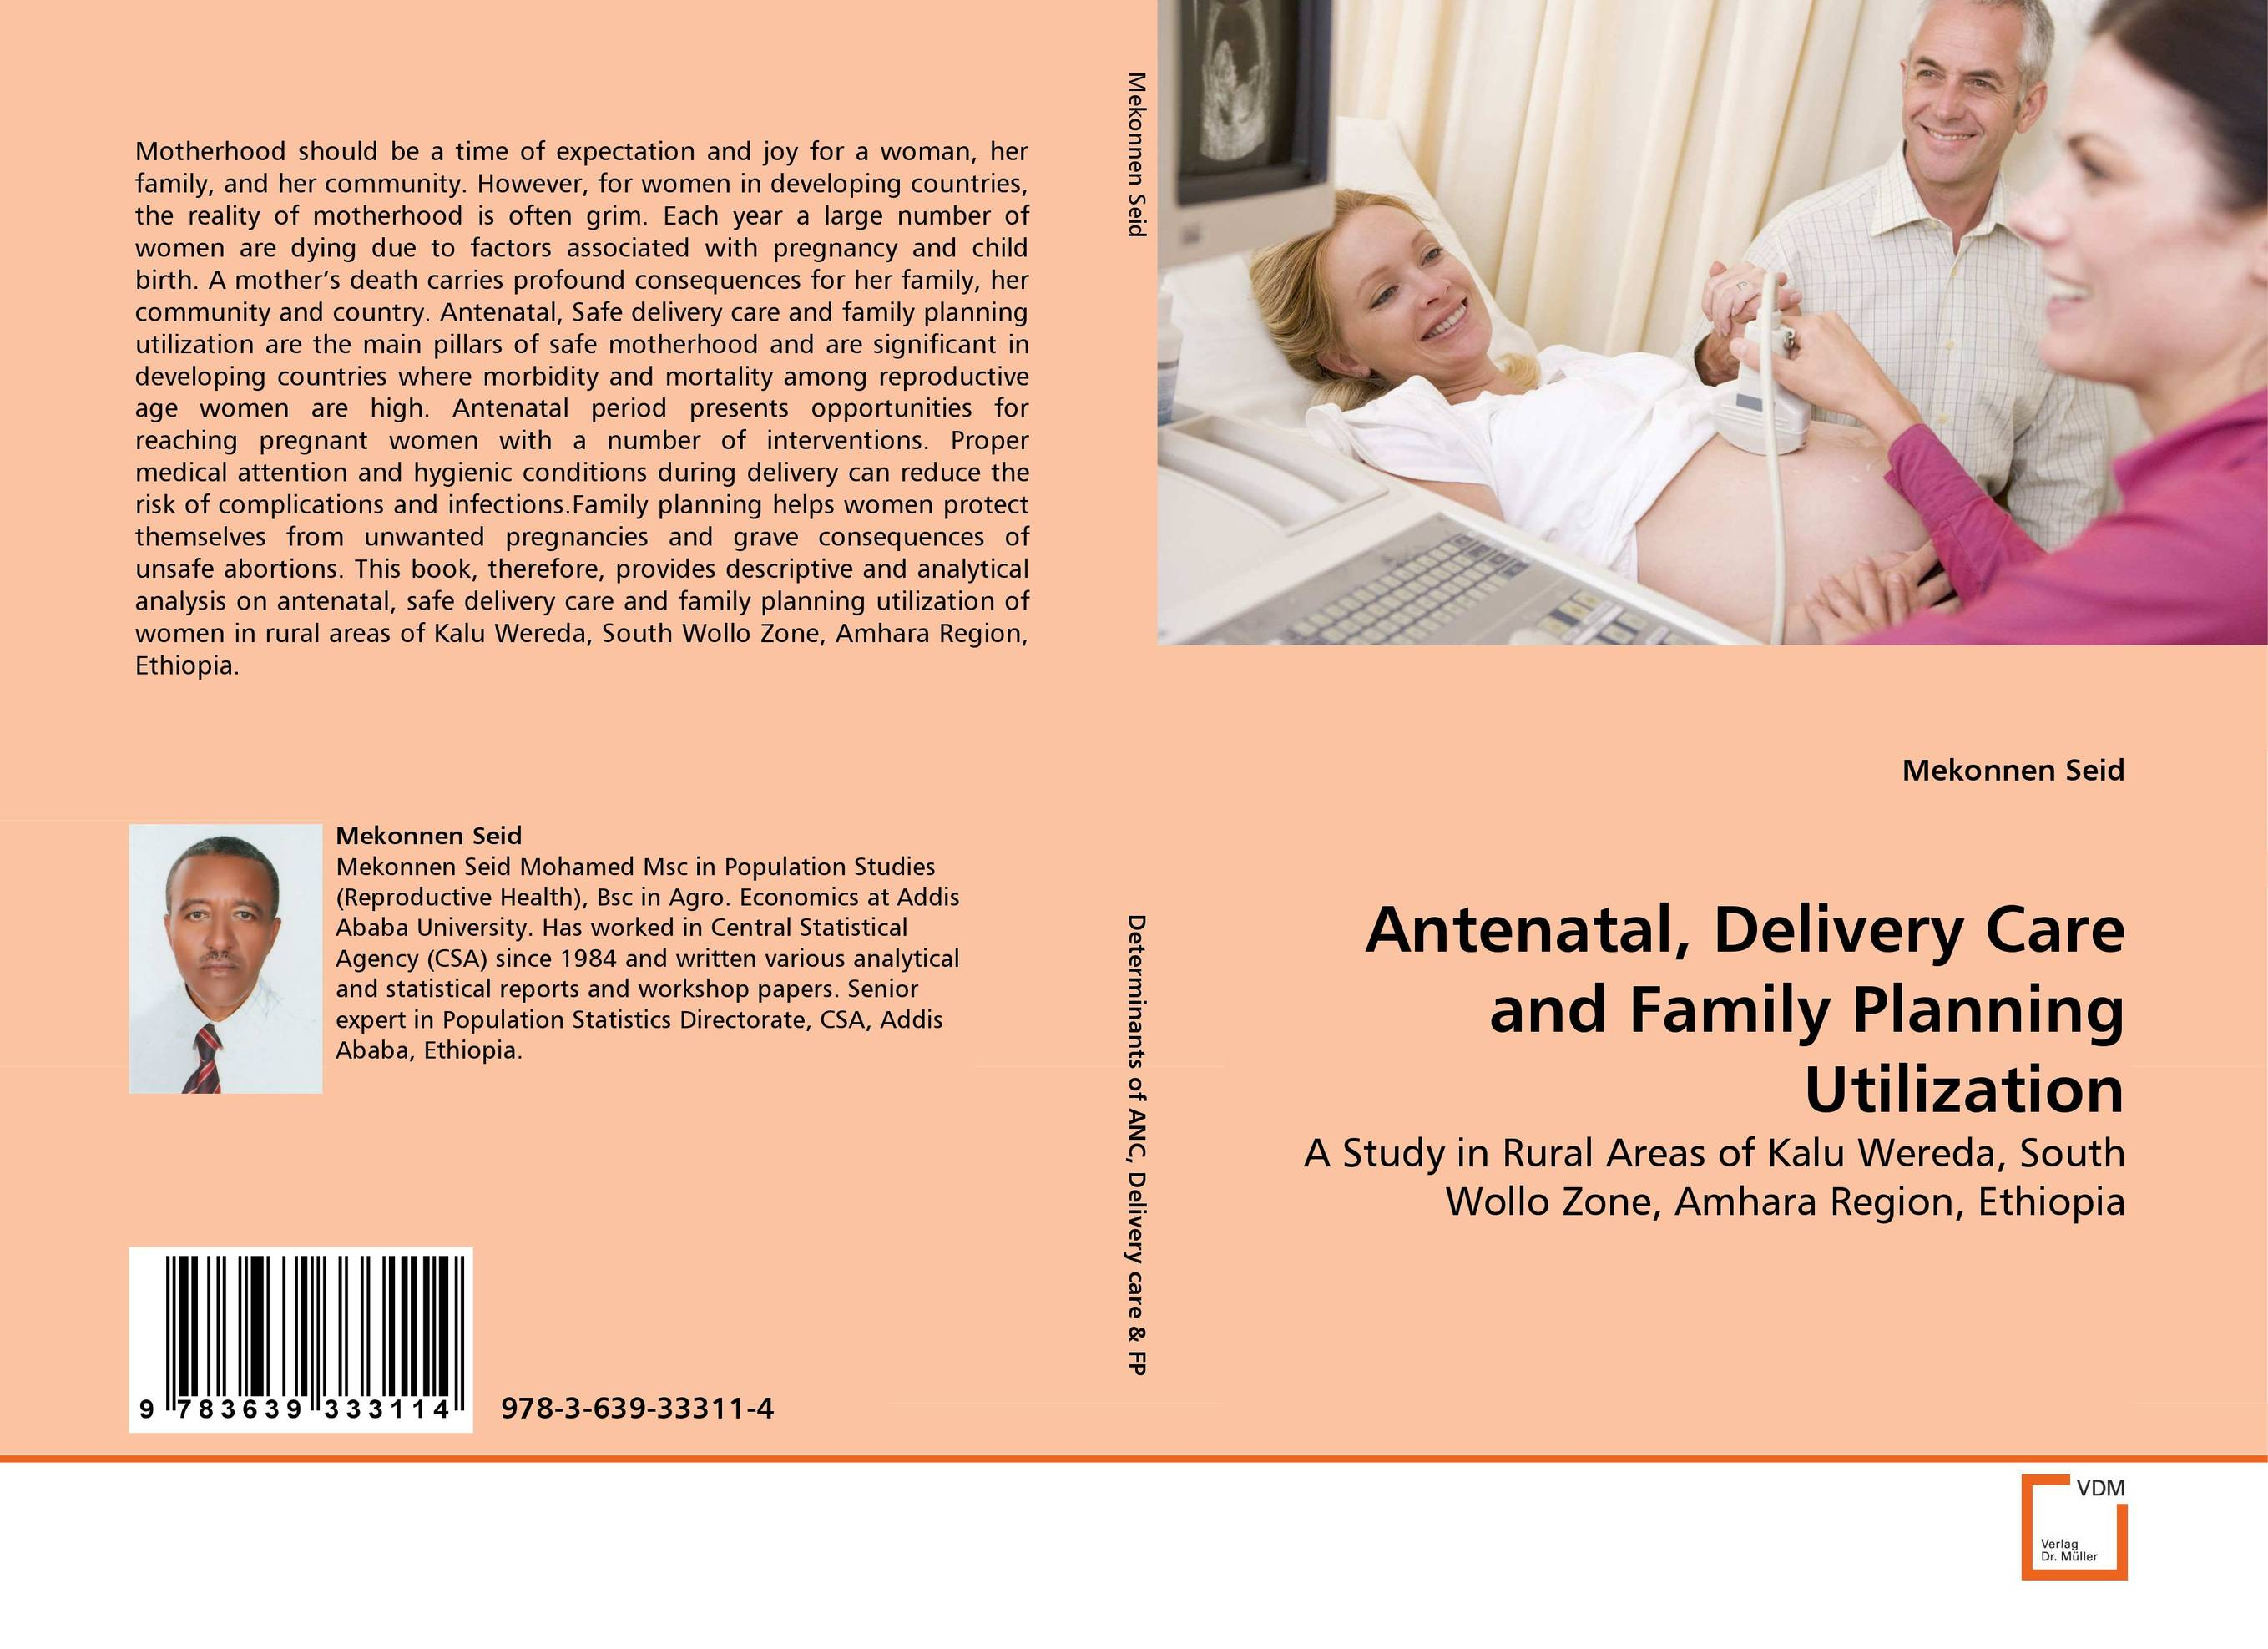 Antenatal, Delivery Care and Family Planning Utilization planning the family in india